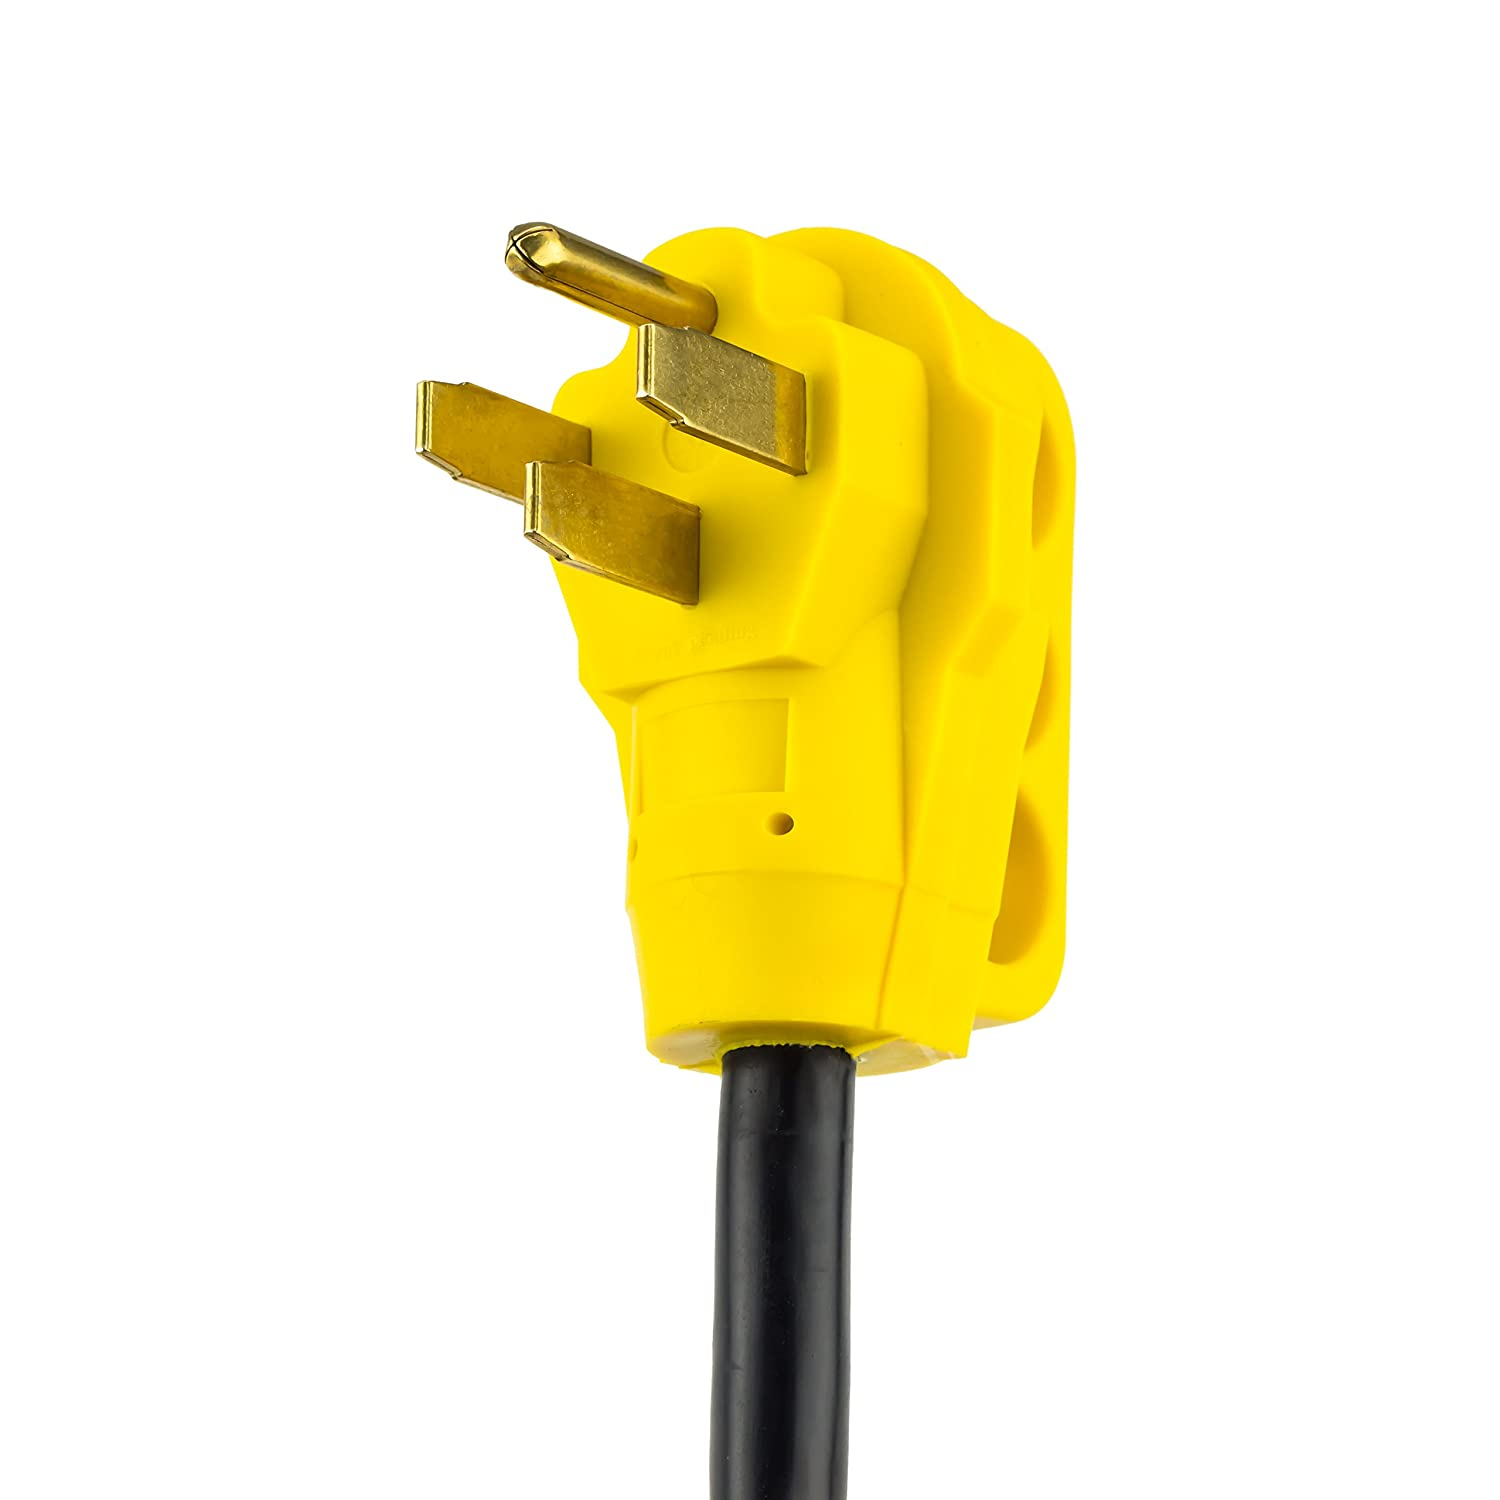 2 4350290806 50 Amp Male Plug to 30 Amp RV Female Connectors DRM Products Inc Proline Power RV Camper Y Adapter Cord with Handles